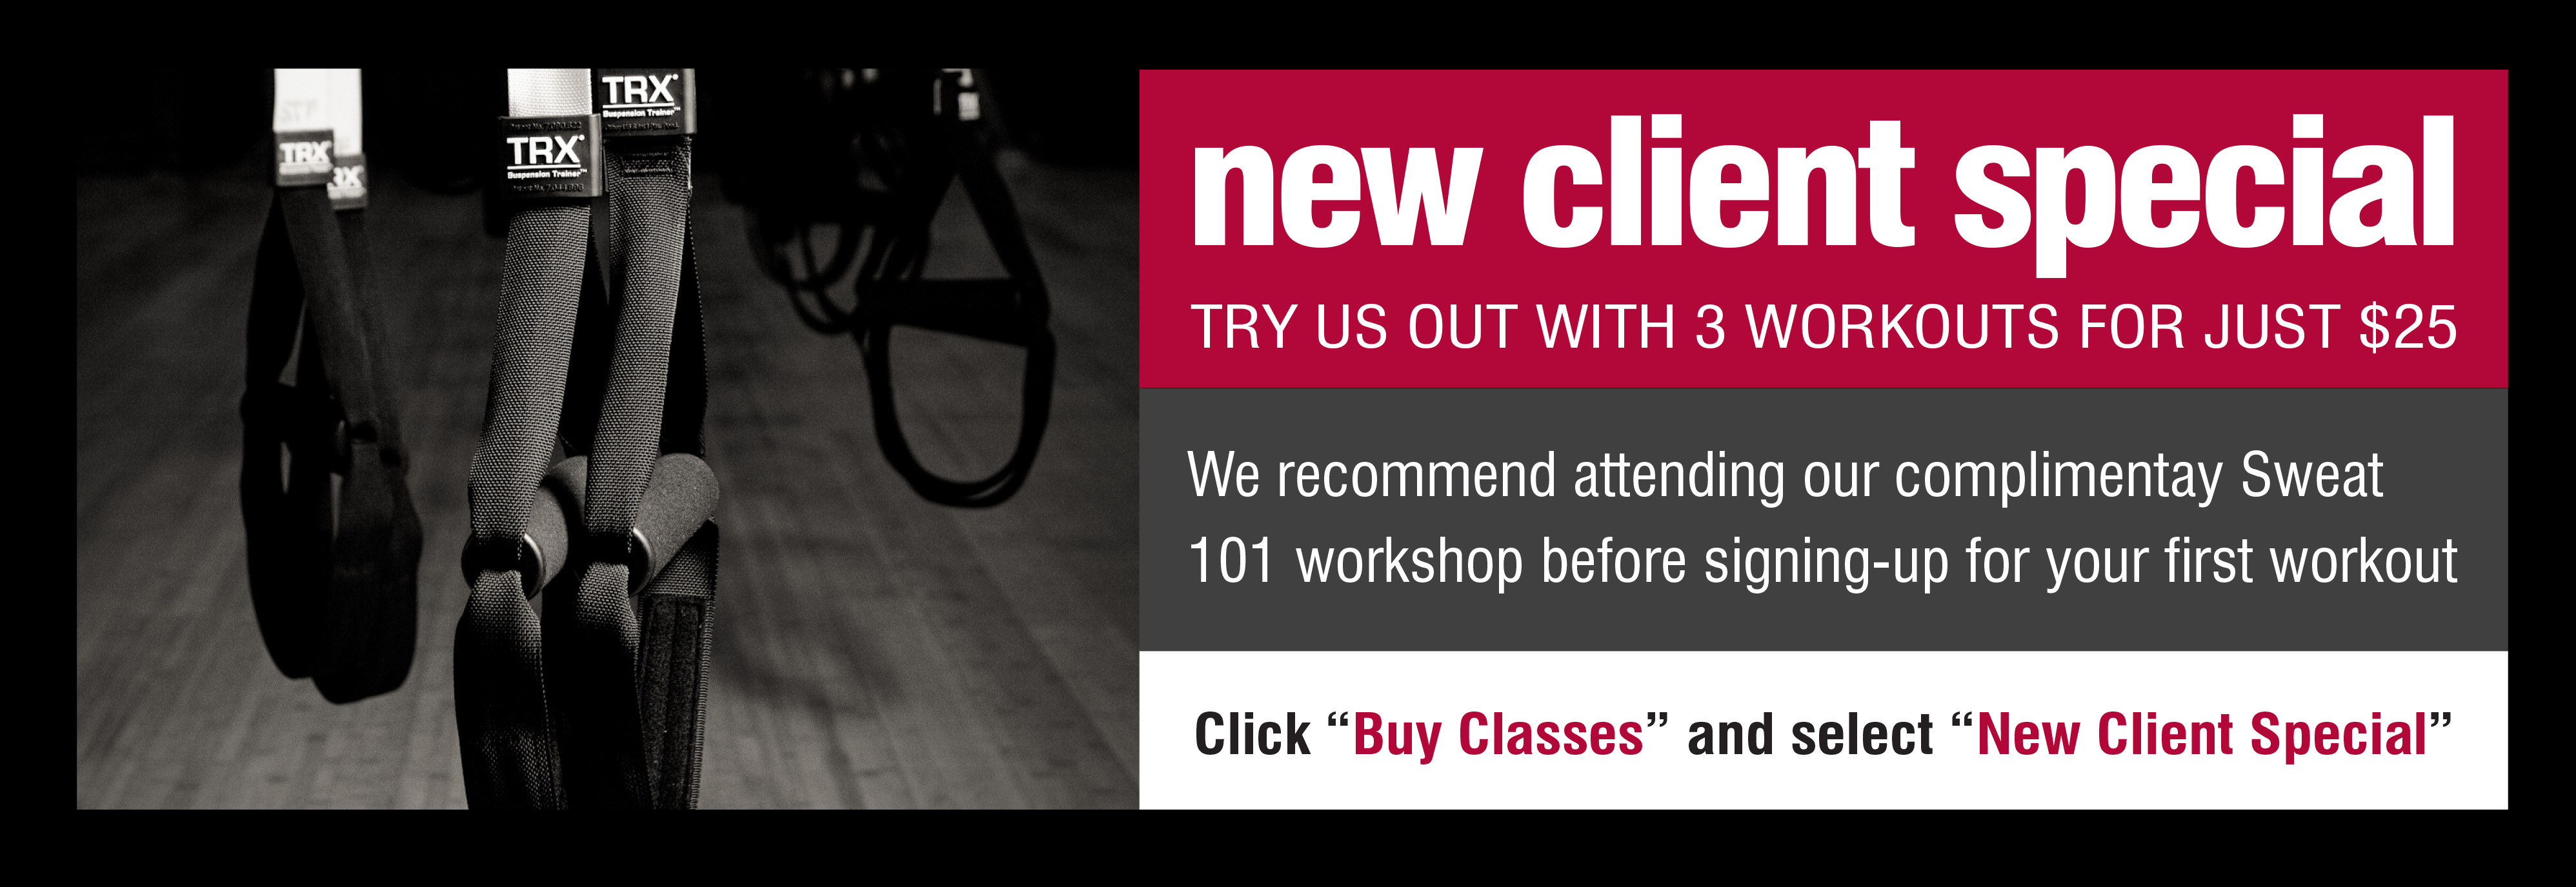 Stfwebbannernewclientv4g sweat therapy fitness is a locally owned fitness studio offering a diverse line up of small group workouts for all fitness levels the sweat therapy fitness xflitez Image collections